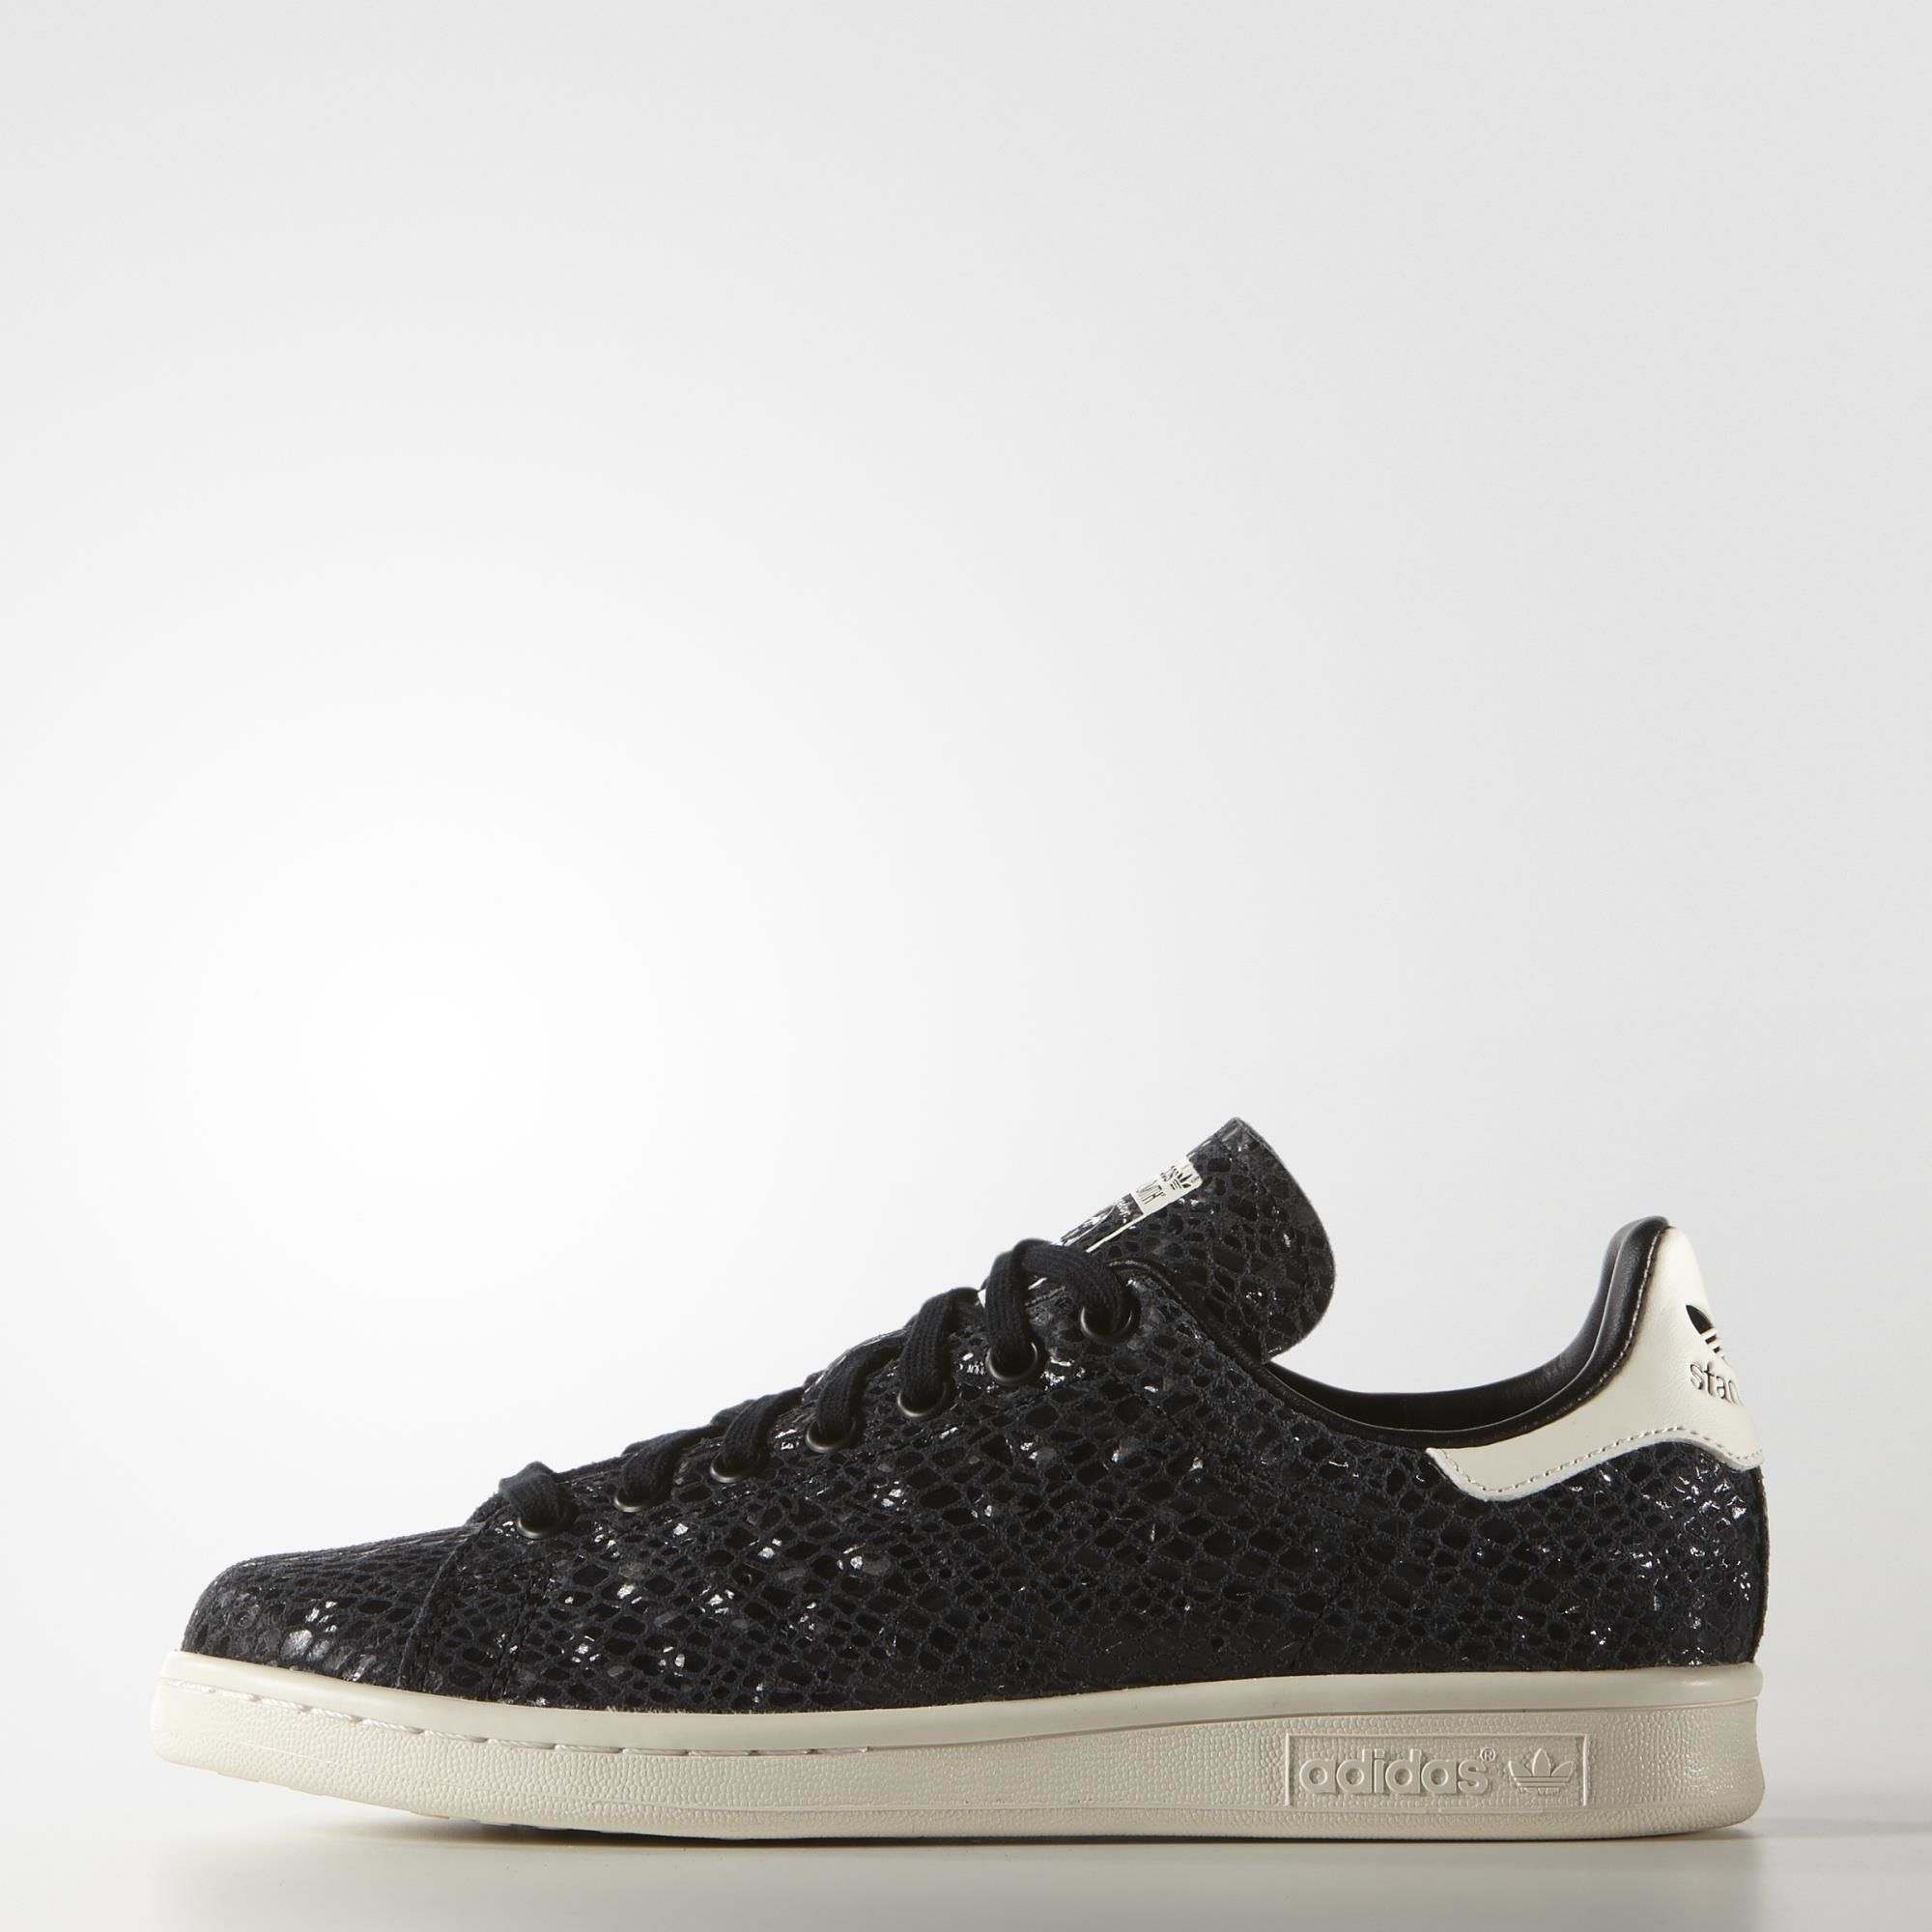 Chaussure Noir Chaussures AdidasFrance Smith Stan qUzVGSpM